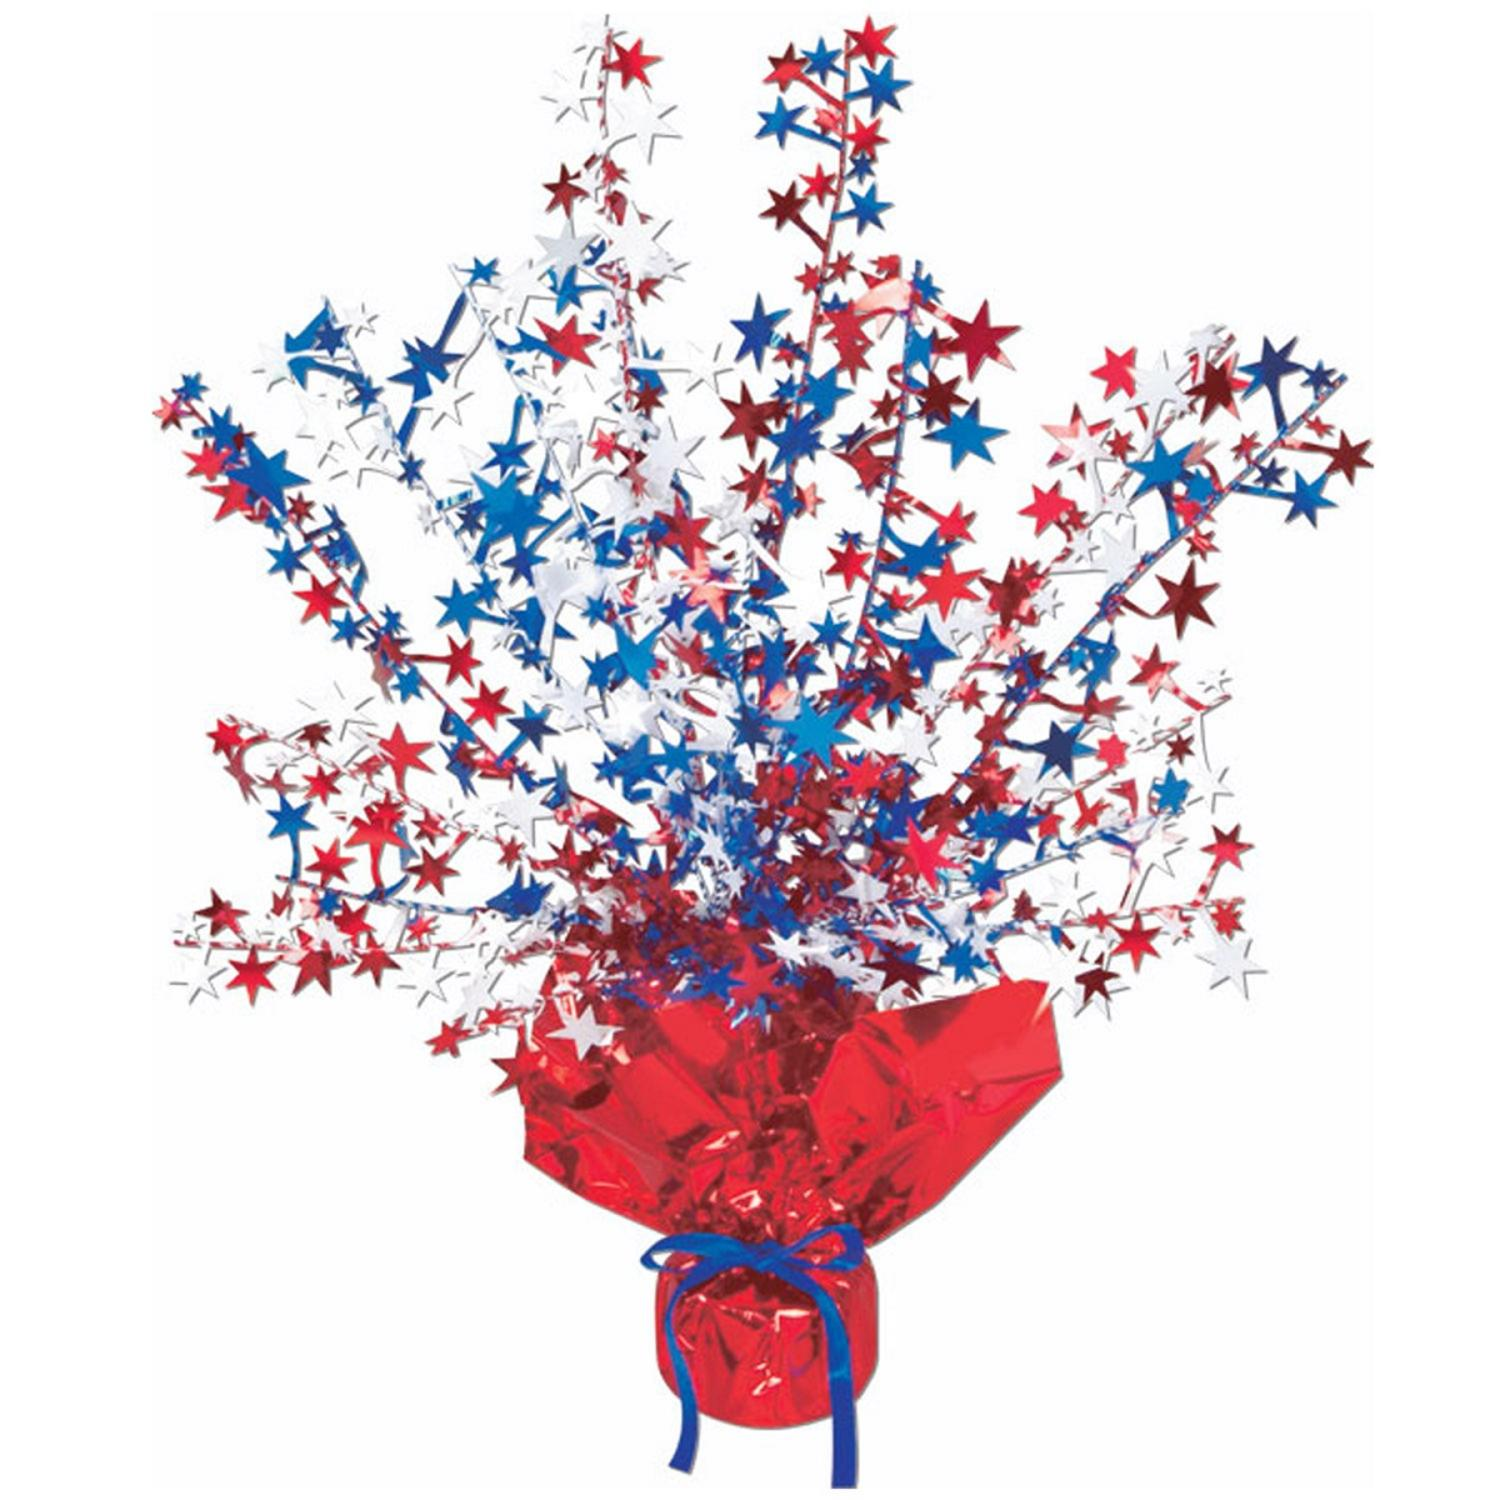 Club Pack of 12 Red, White and Blue Star Gleam 'N Burst Centerpiece Party Decorations 15""